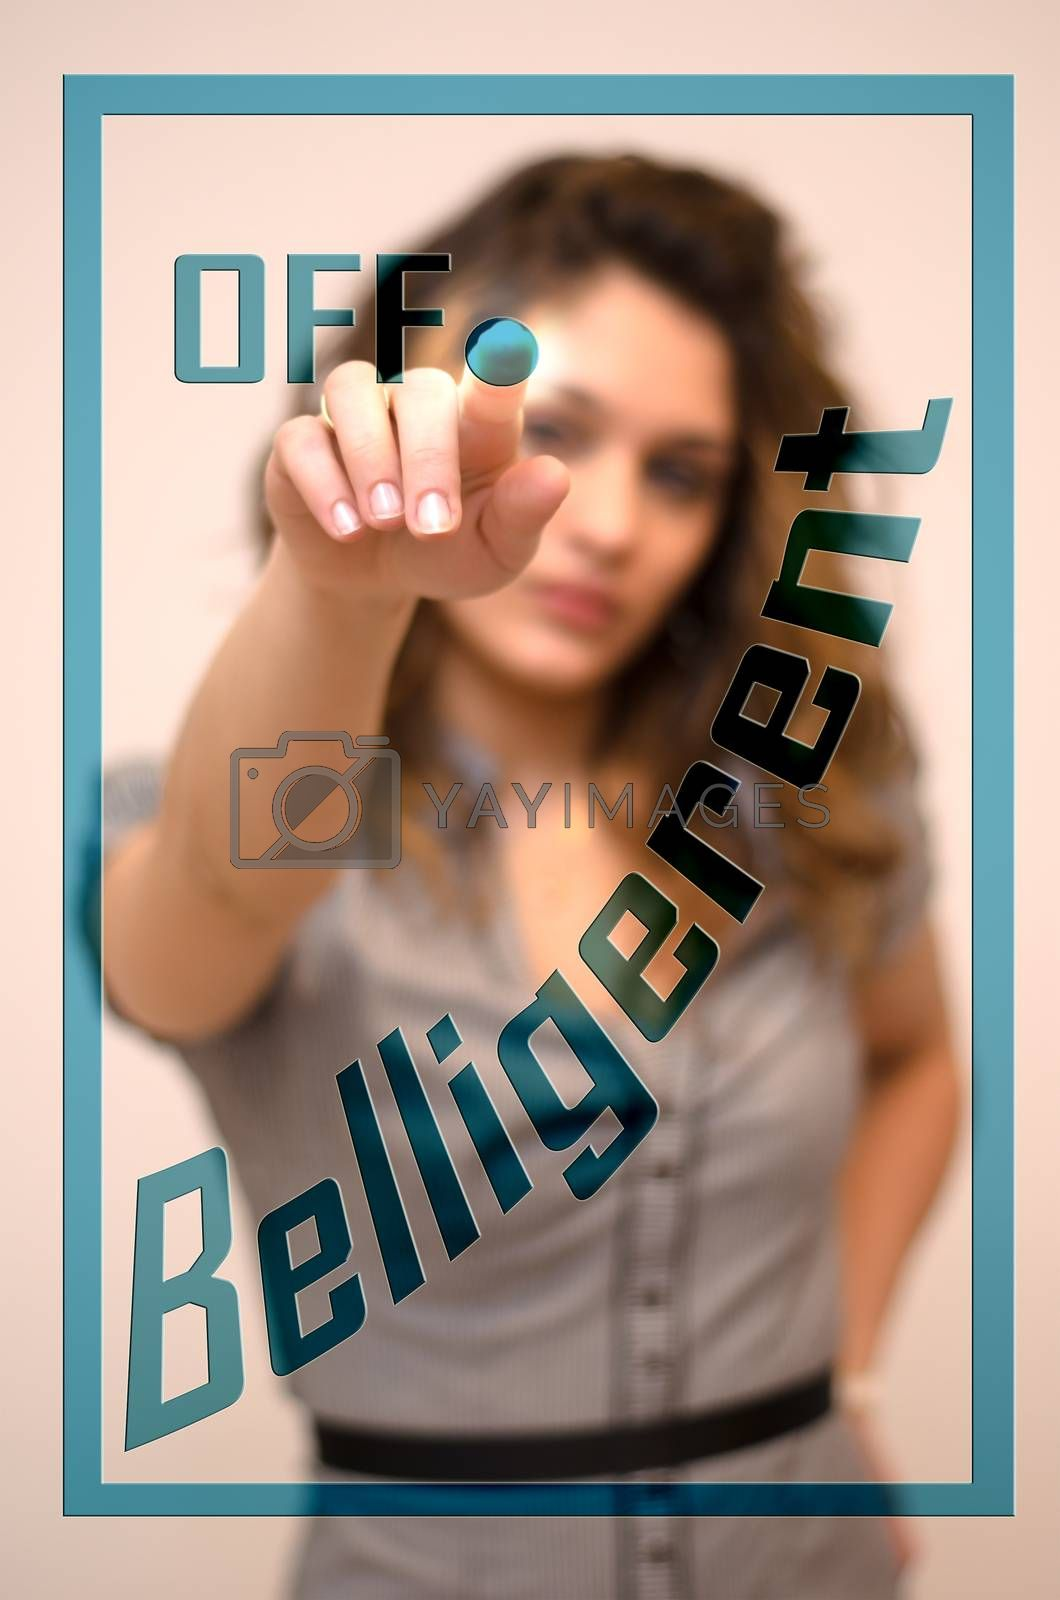 young woman turning off Belligerent on screen